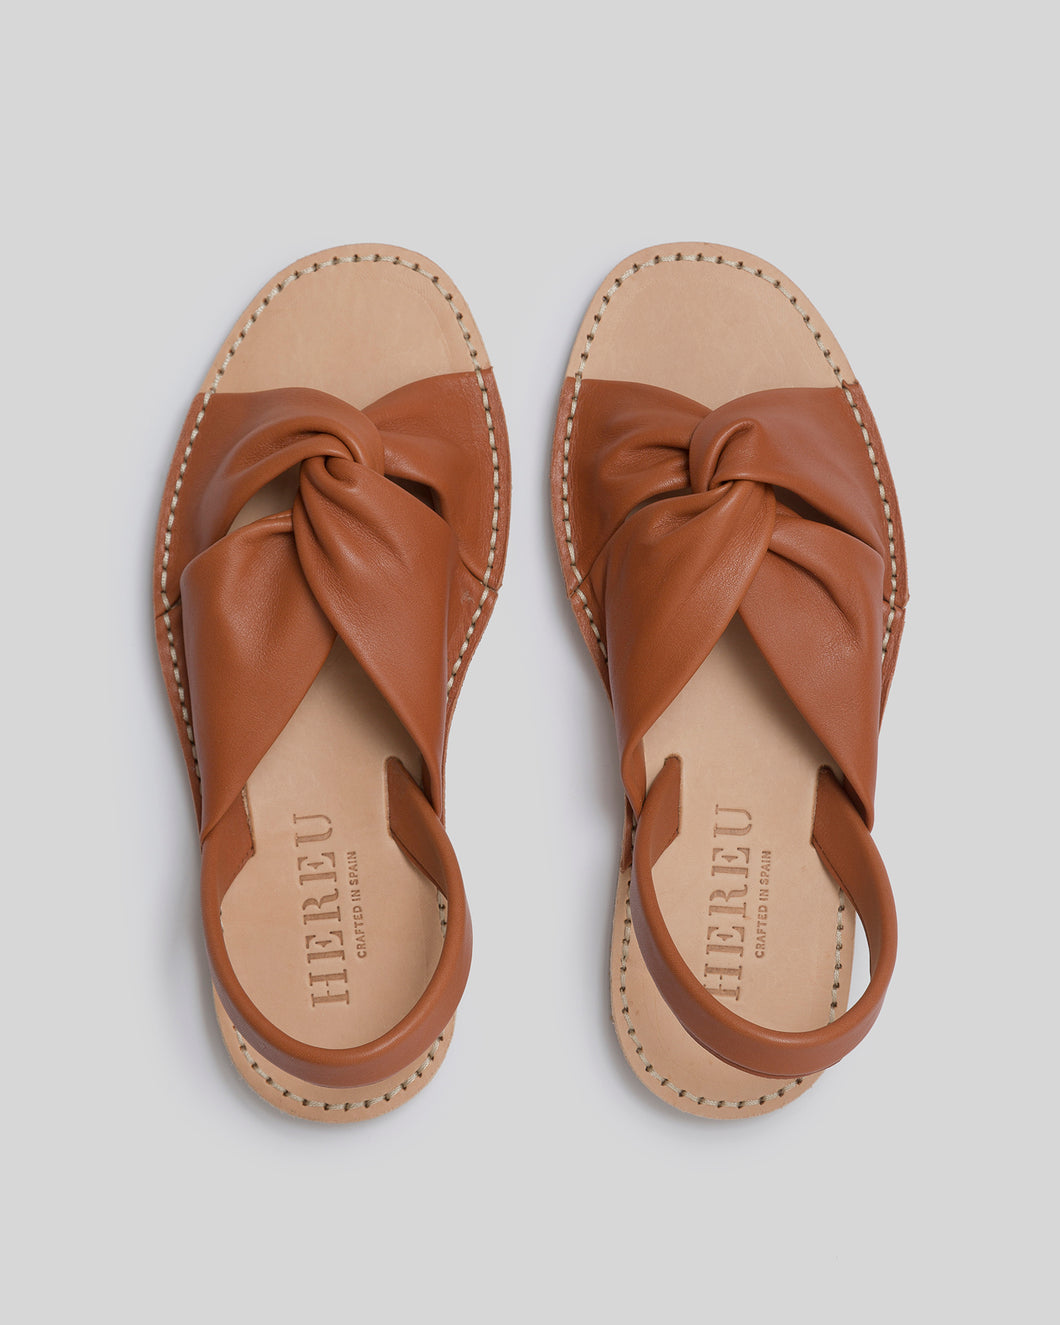 ADDAIA - Knot Leather Flat Sandals